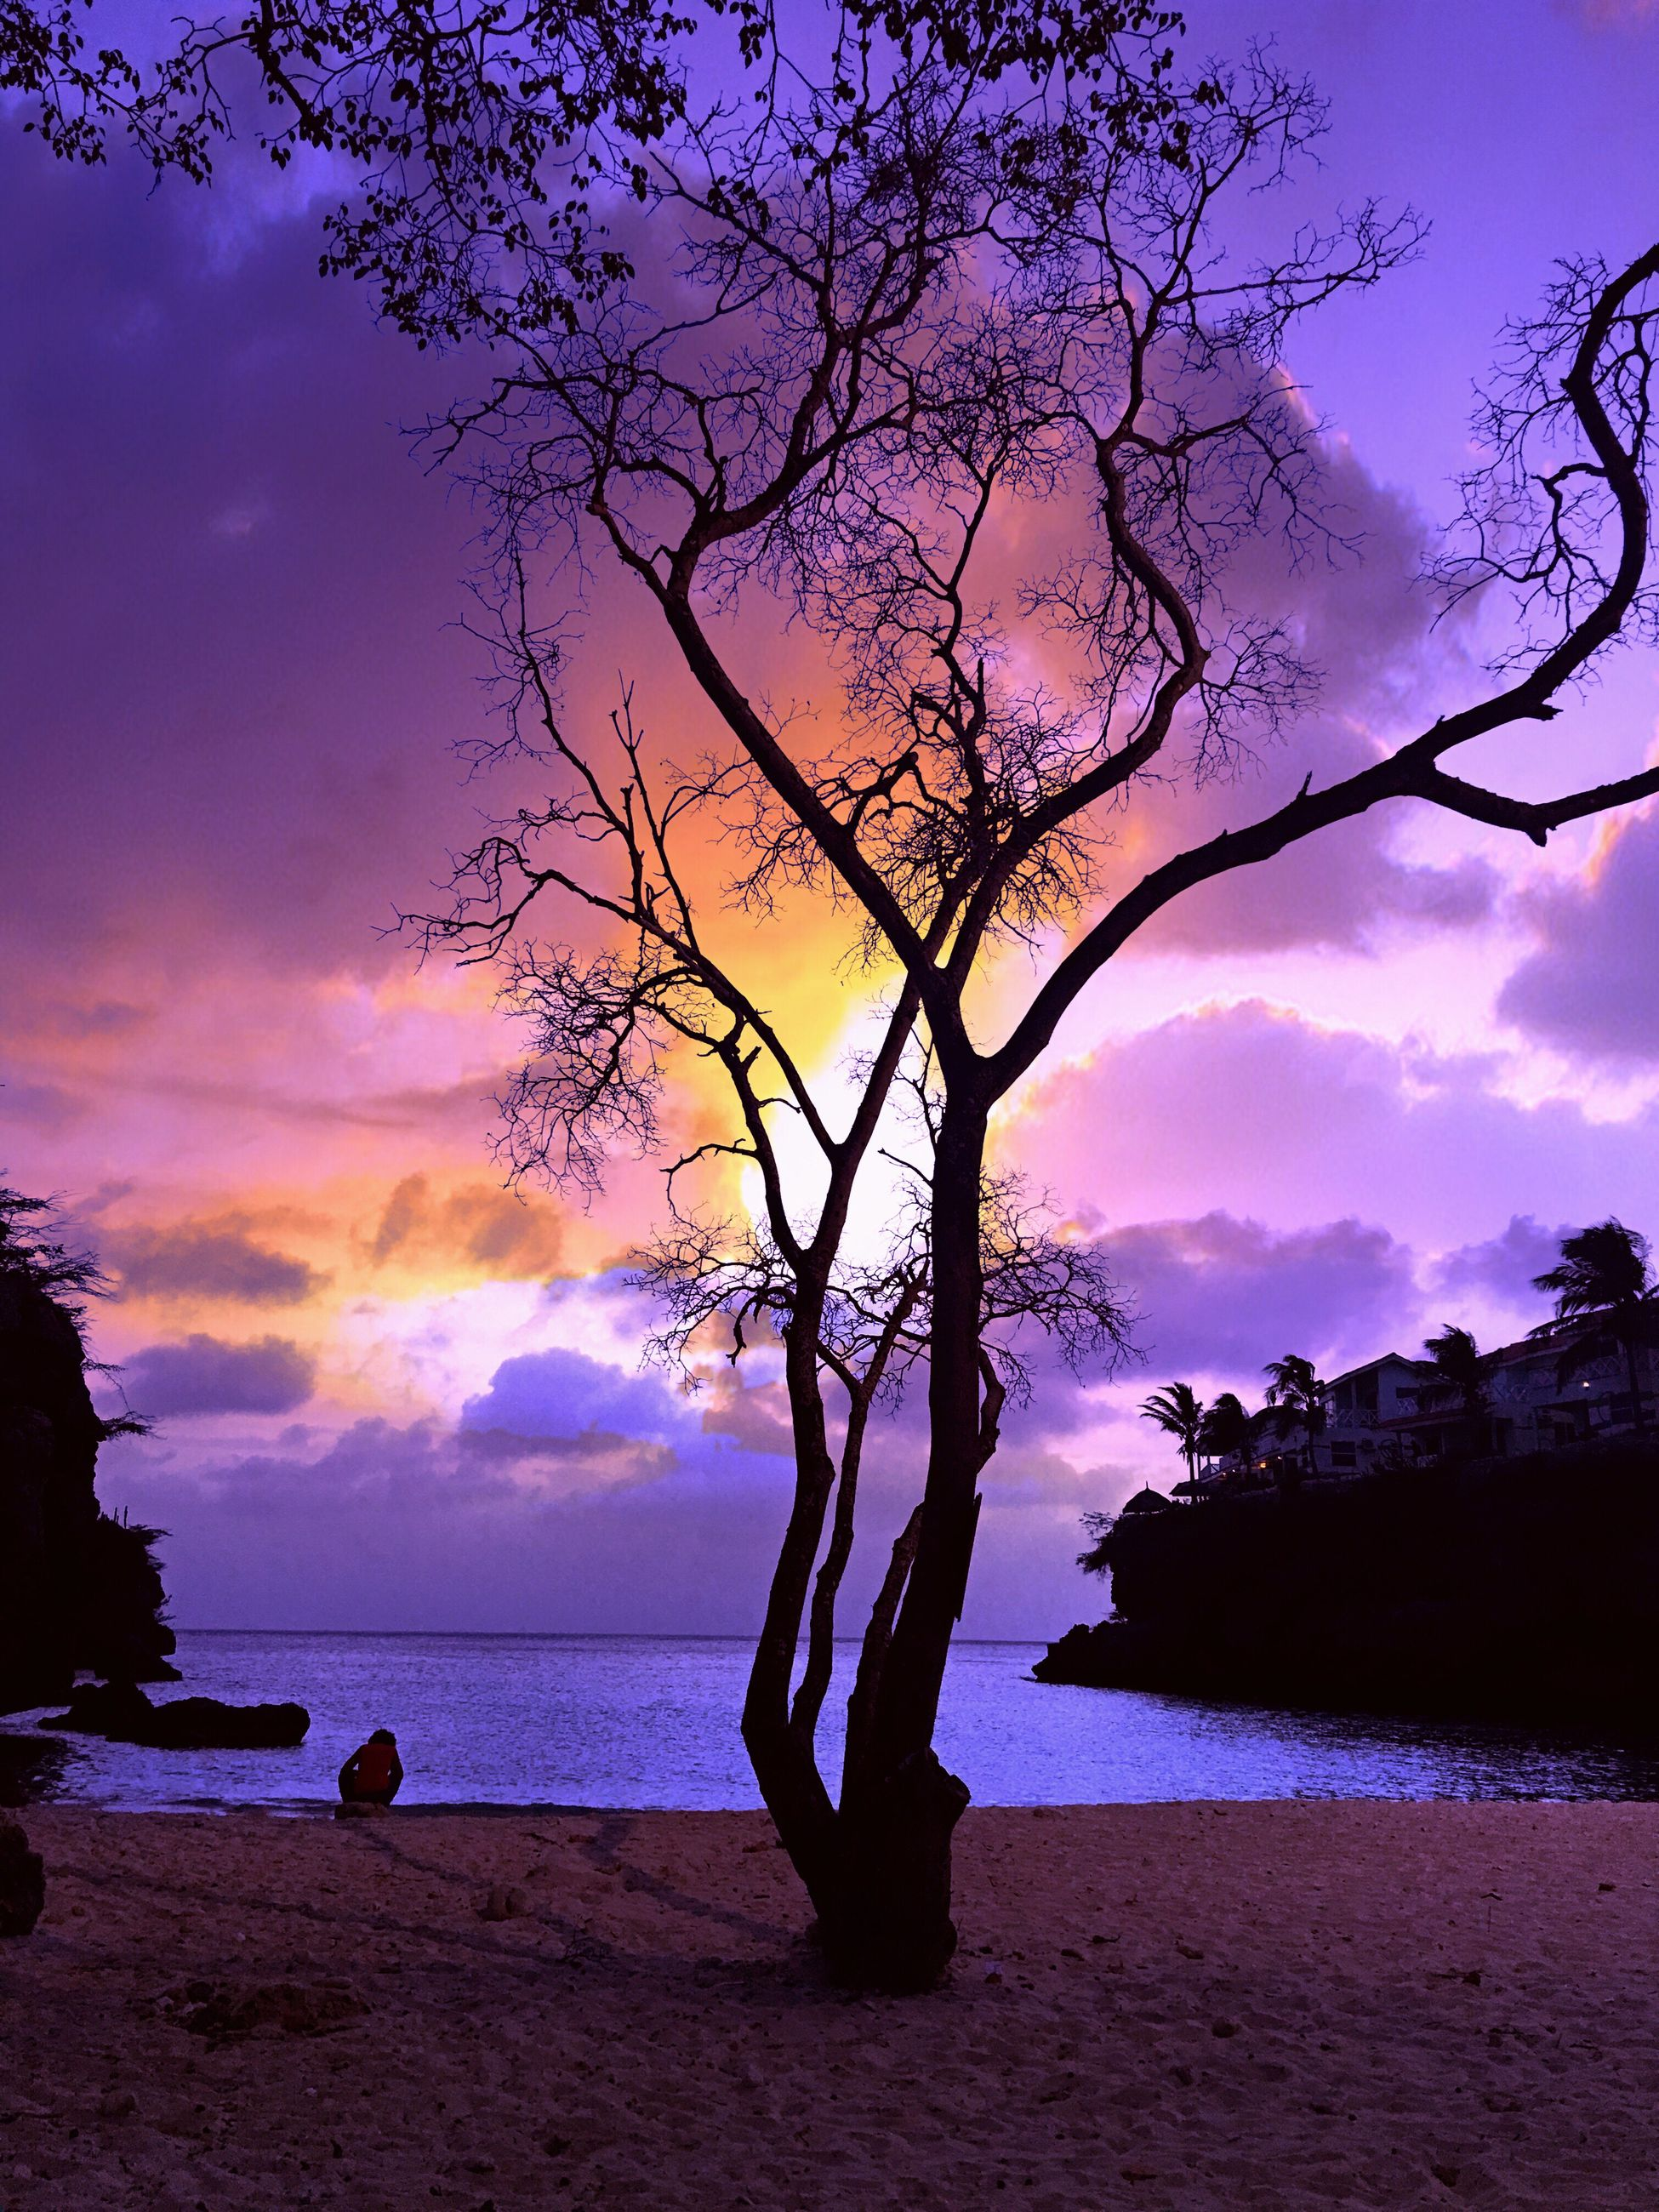 sea, beauty in nature, nature, water, tranquility, scenics, tranquil scene, tree, silhouette, horizon over water, sky, no people, beach, sunset, outdoors, day